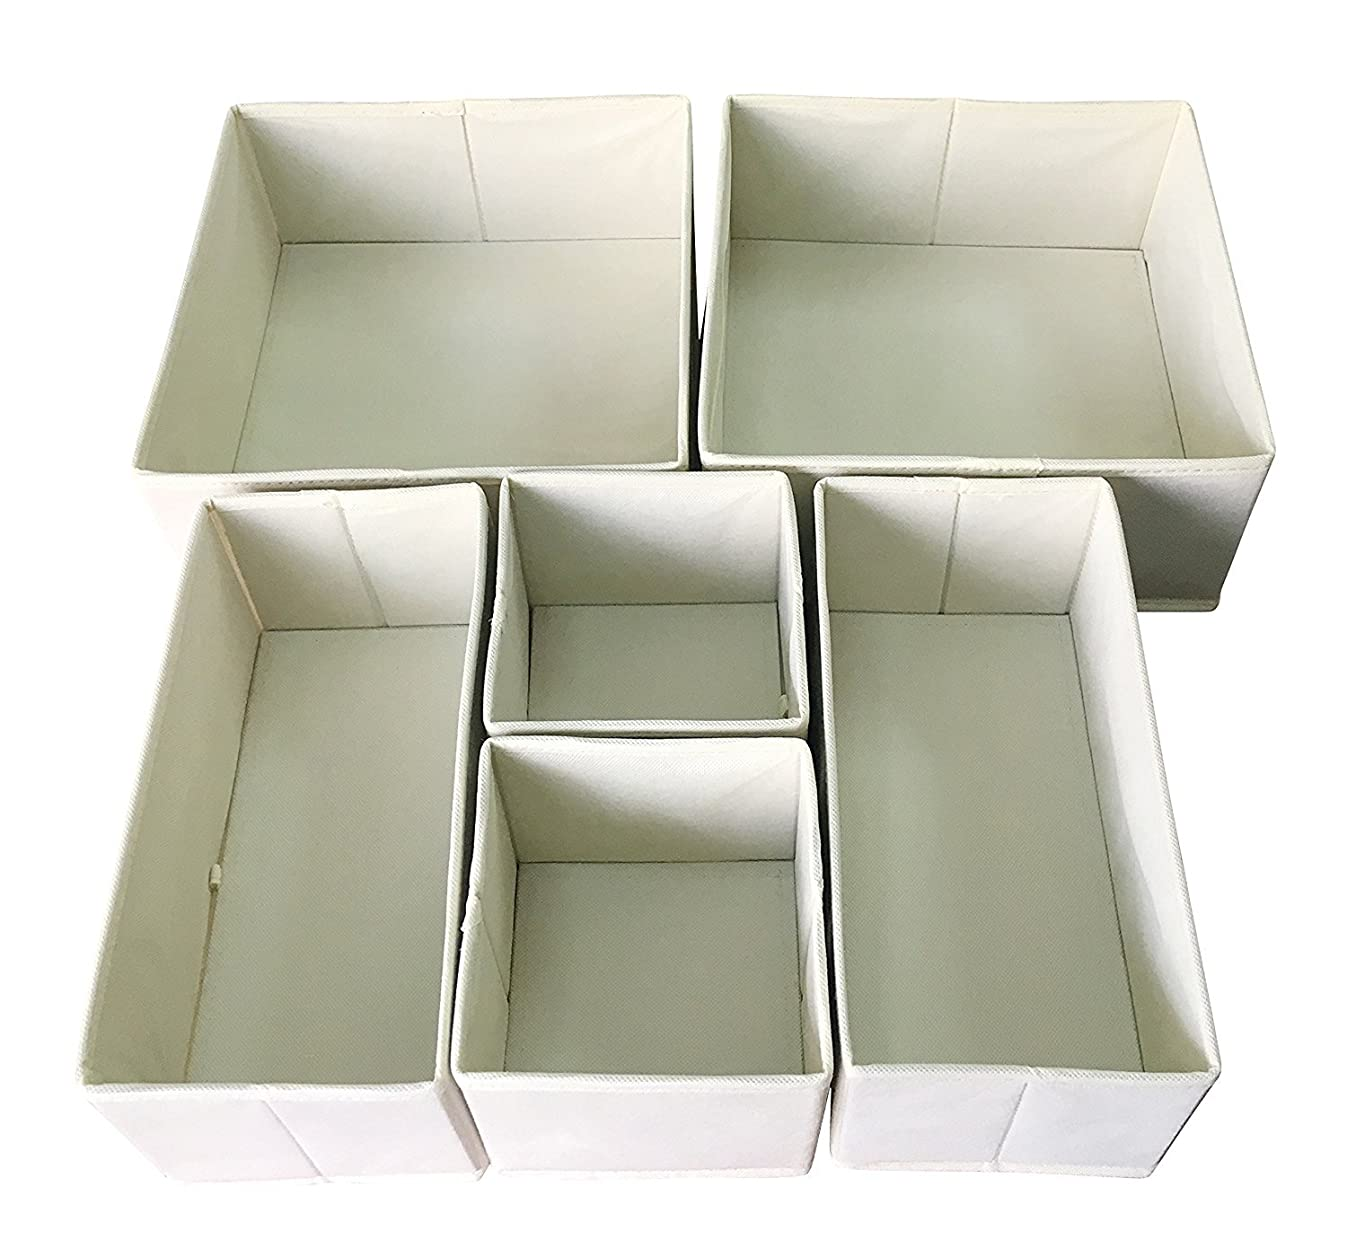 Sodynee FBA_SCD6SBE Foldable Cloth Storage Box Closet Dresser Organizer Cube Basket Bins Containers Divider with Drawers for Underwear, Bras, Socks, Ties, Scarves, 6 Pack, Beige